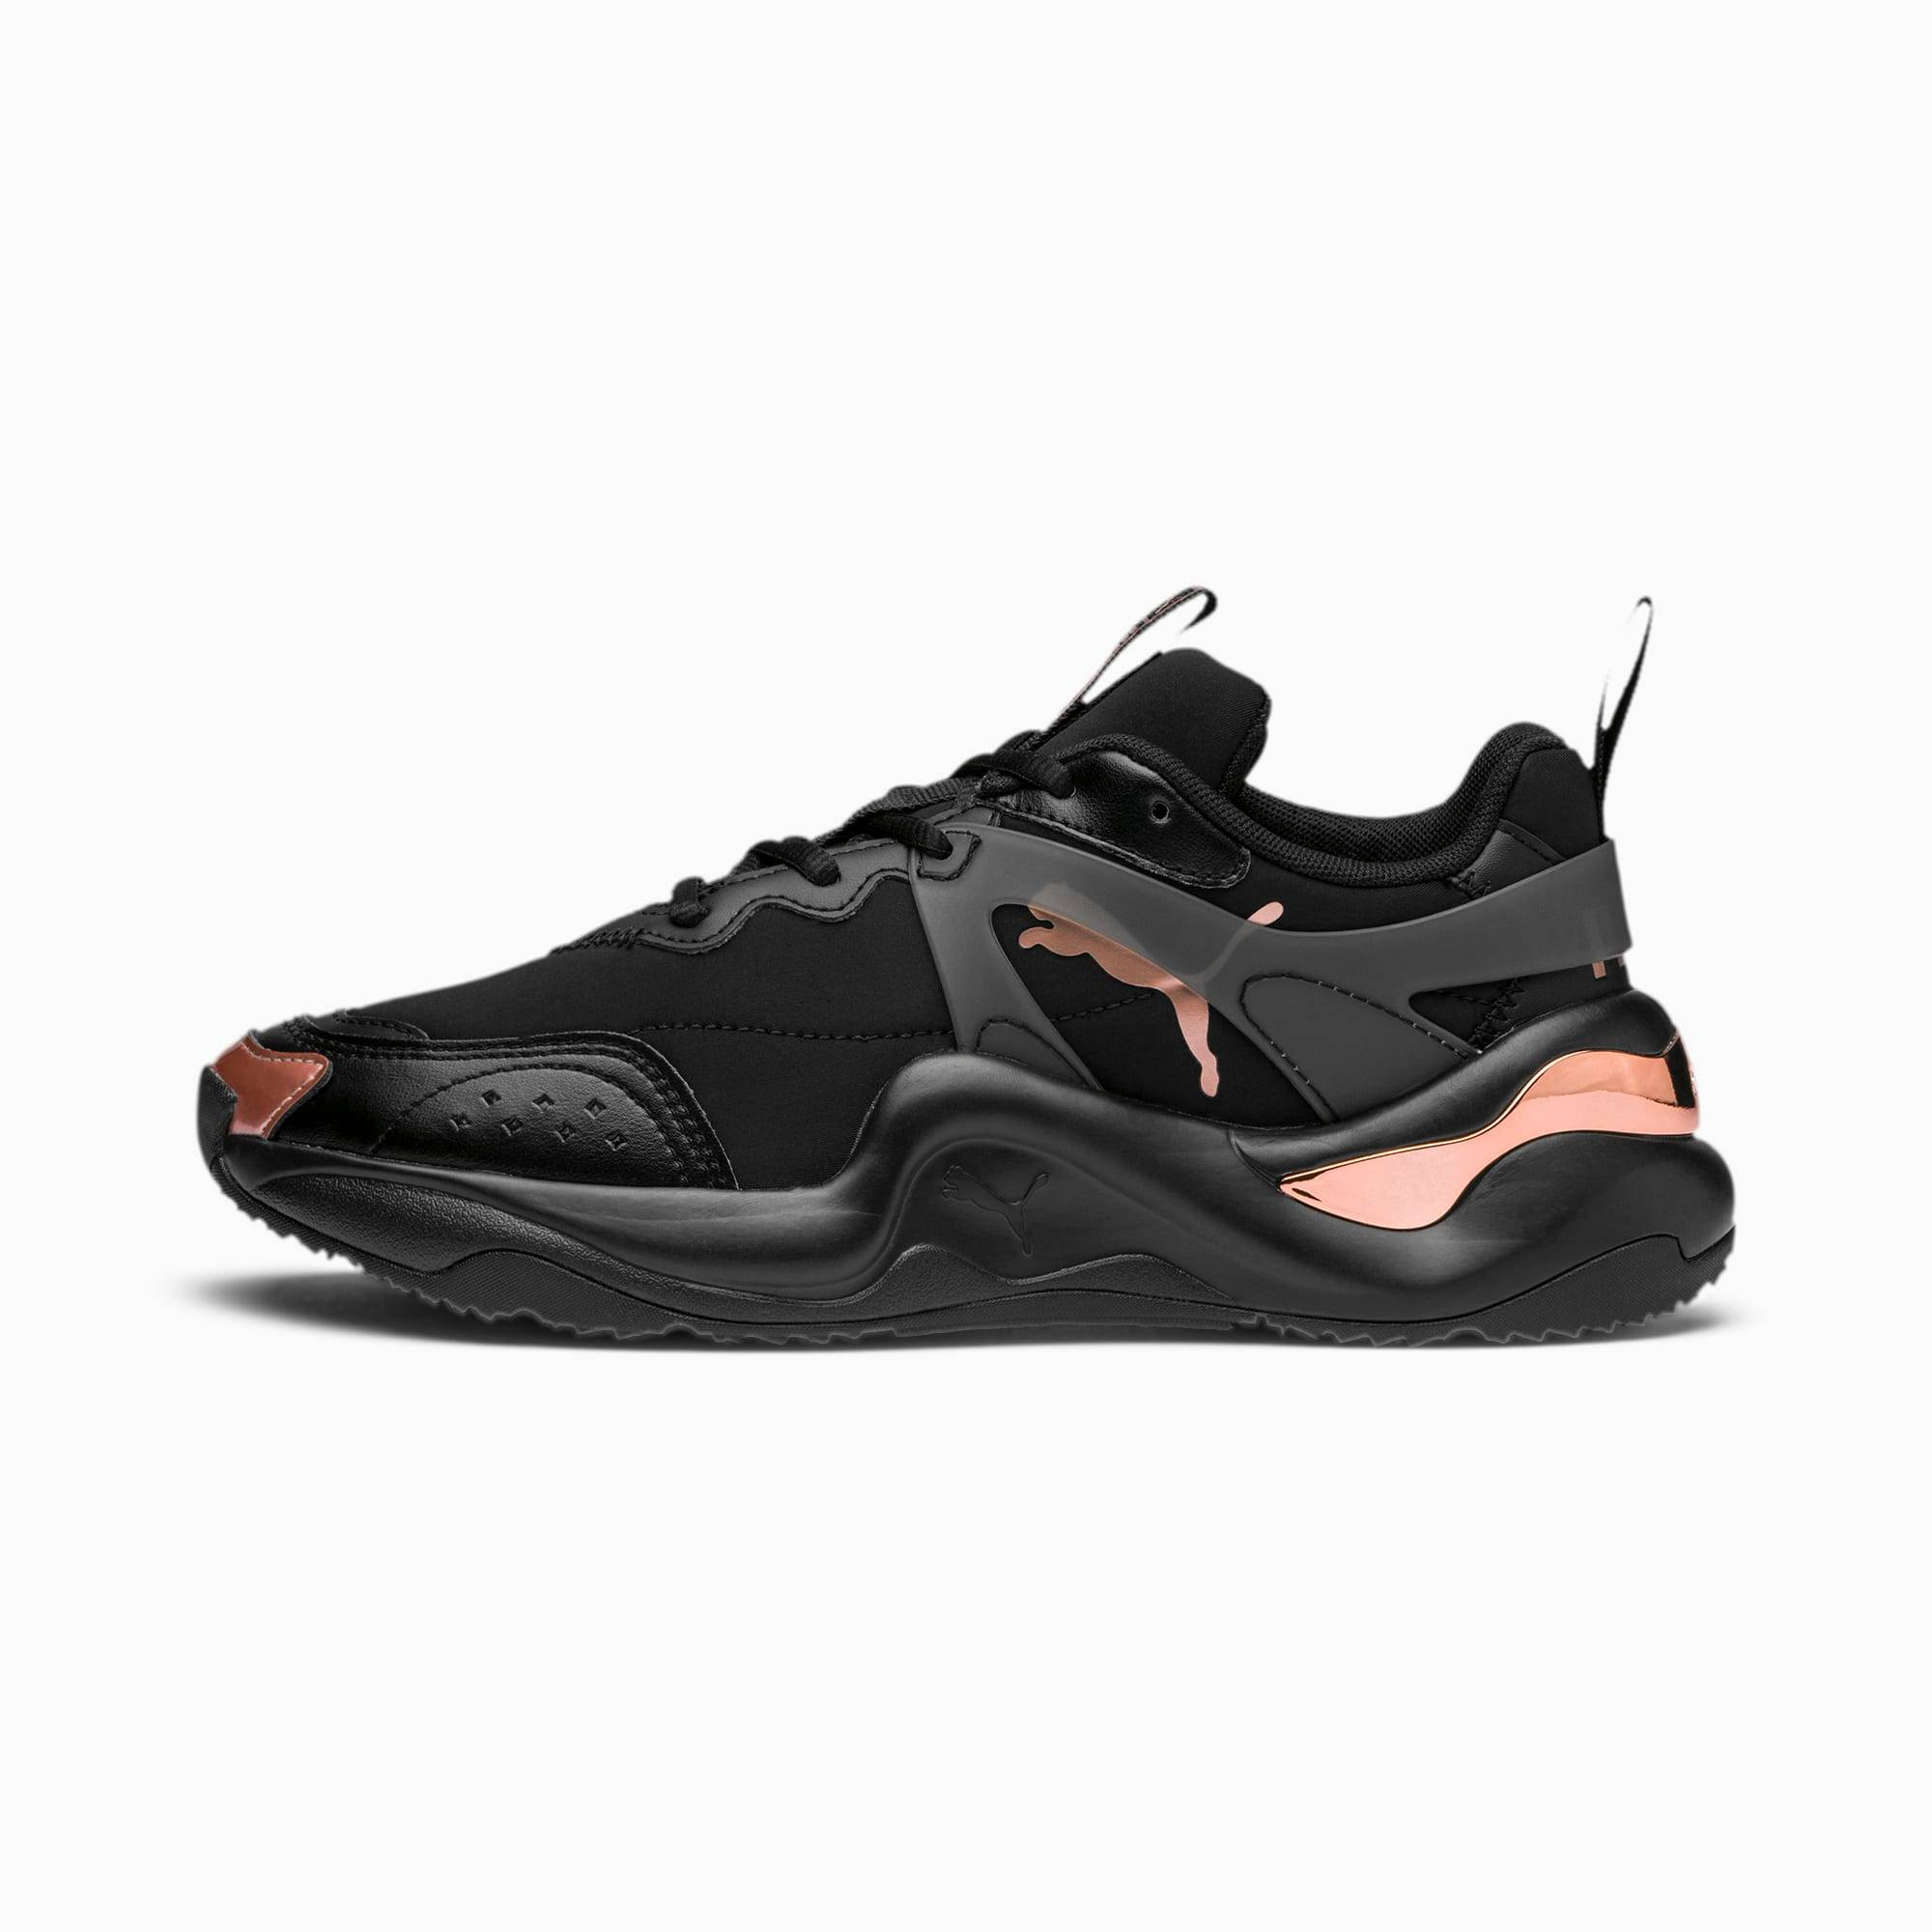 PUMA Chaussure Basket Rise Neoprene pour Femme, Or/Rose/Noir, Taille 41, Chaussures